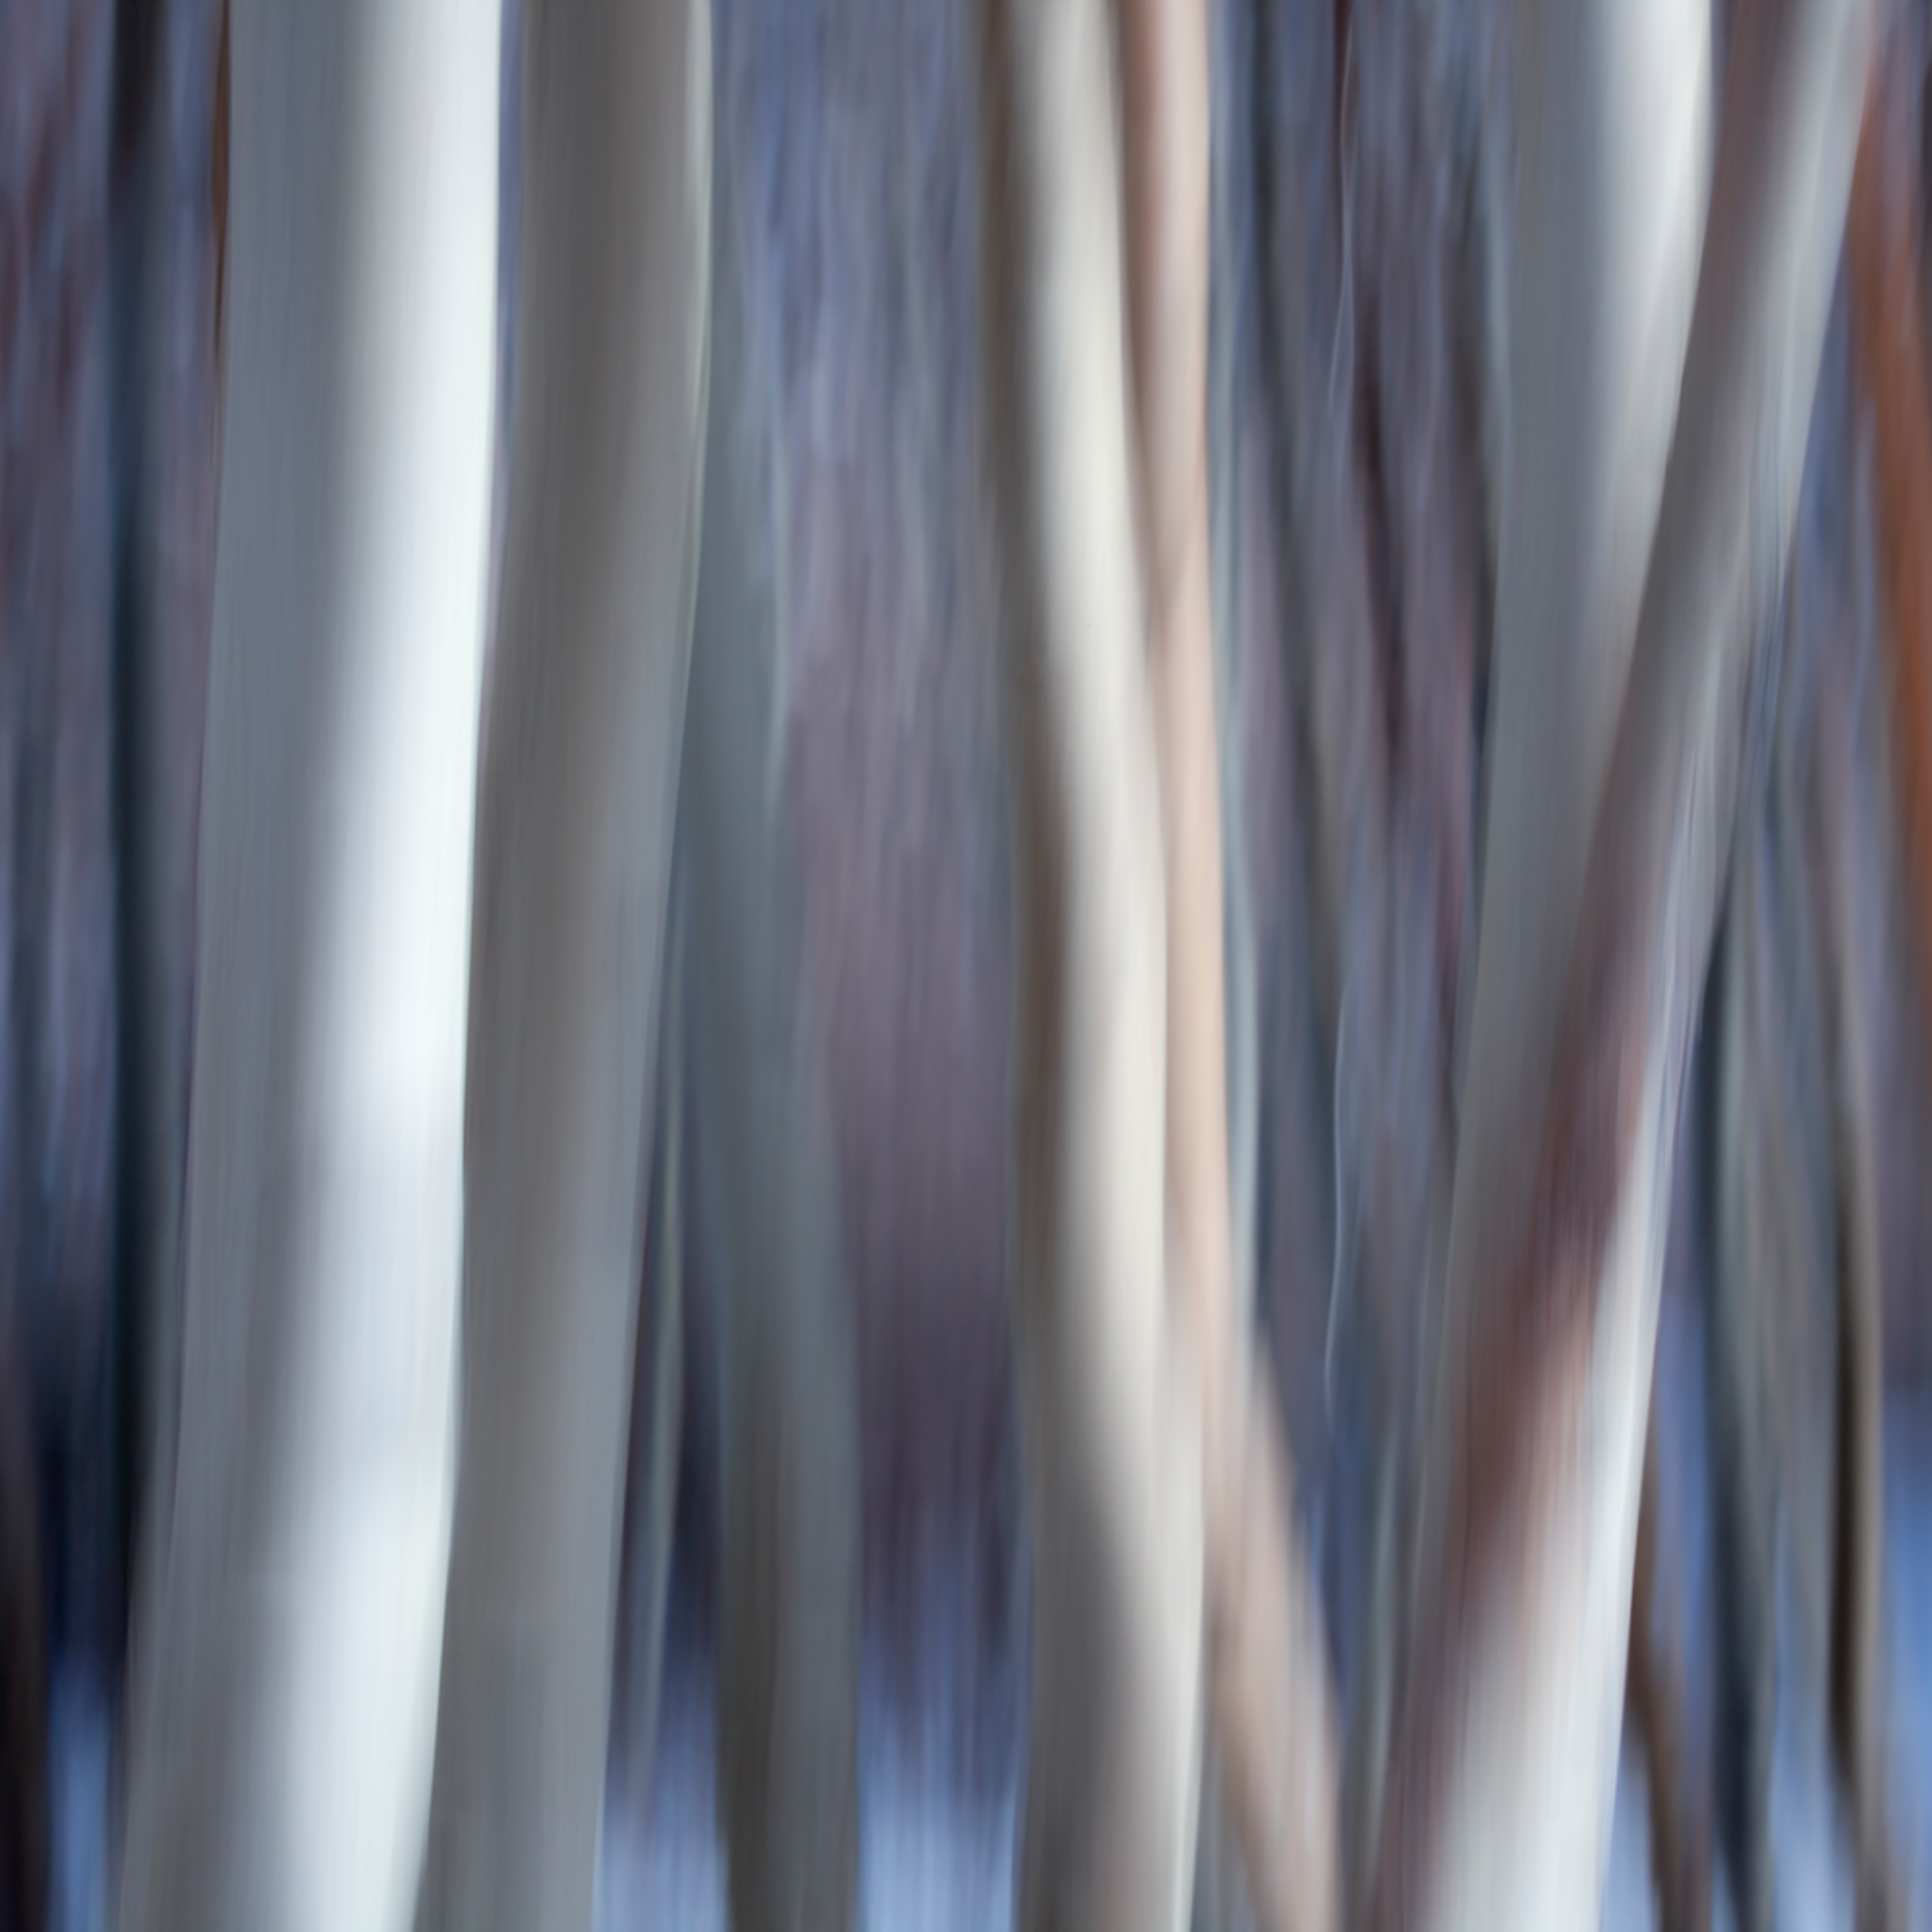 Aspen abstract nfbthh